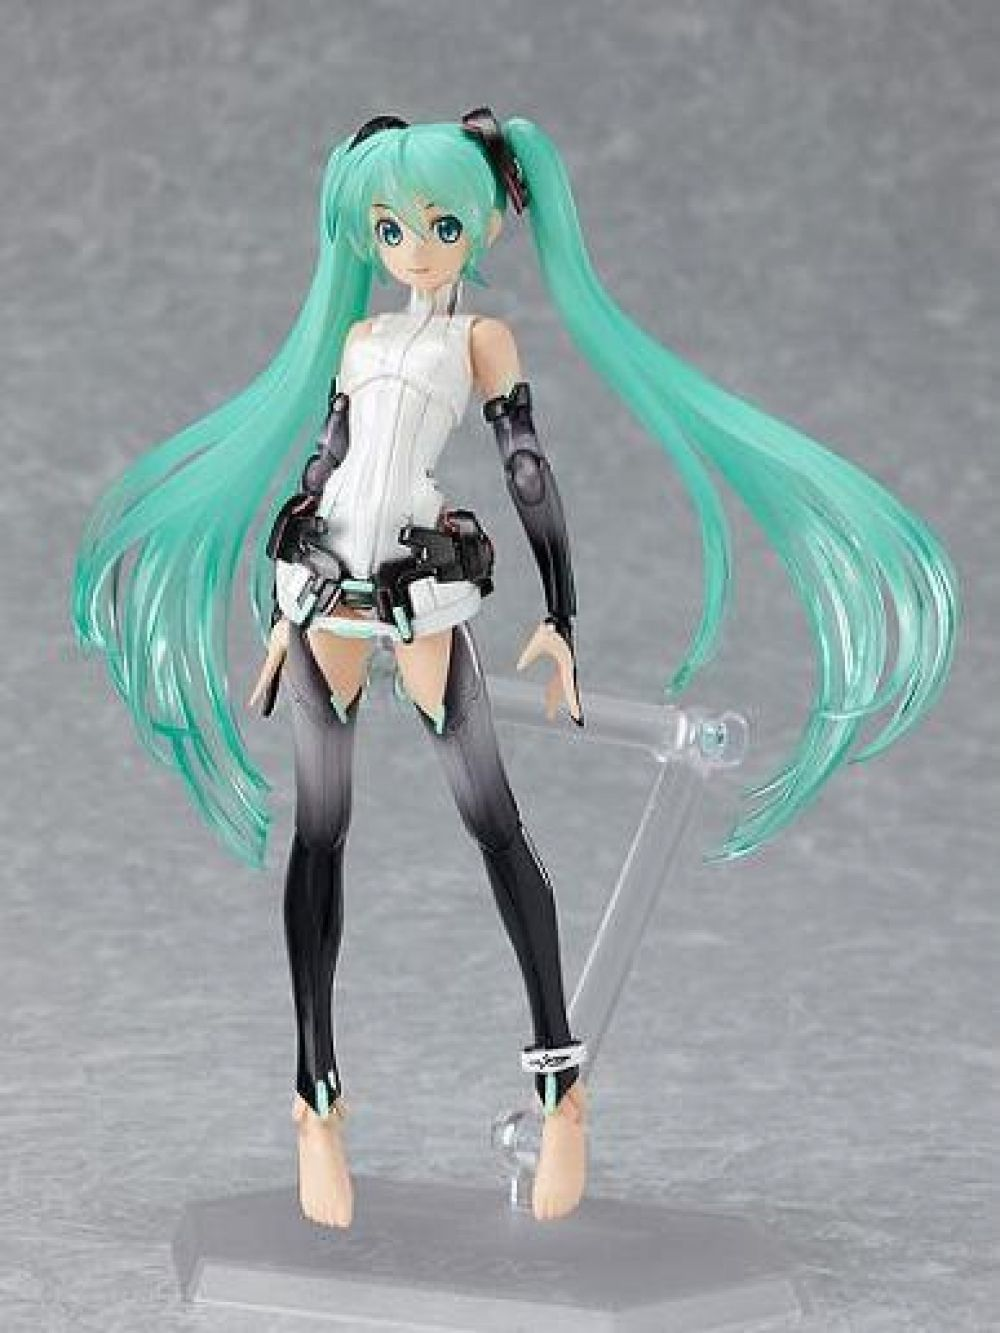 Toy Gift Anime Vocaloid Hatsune Miku PVC Action Figure Figurine Figma Collection